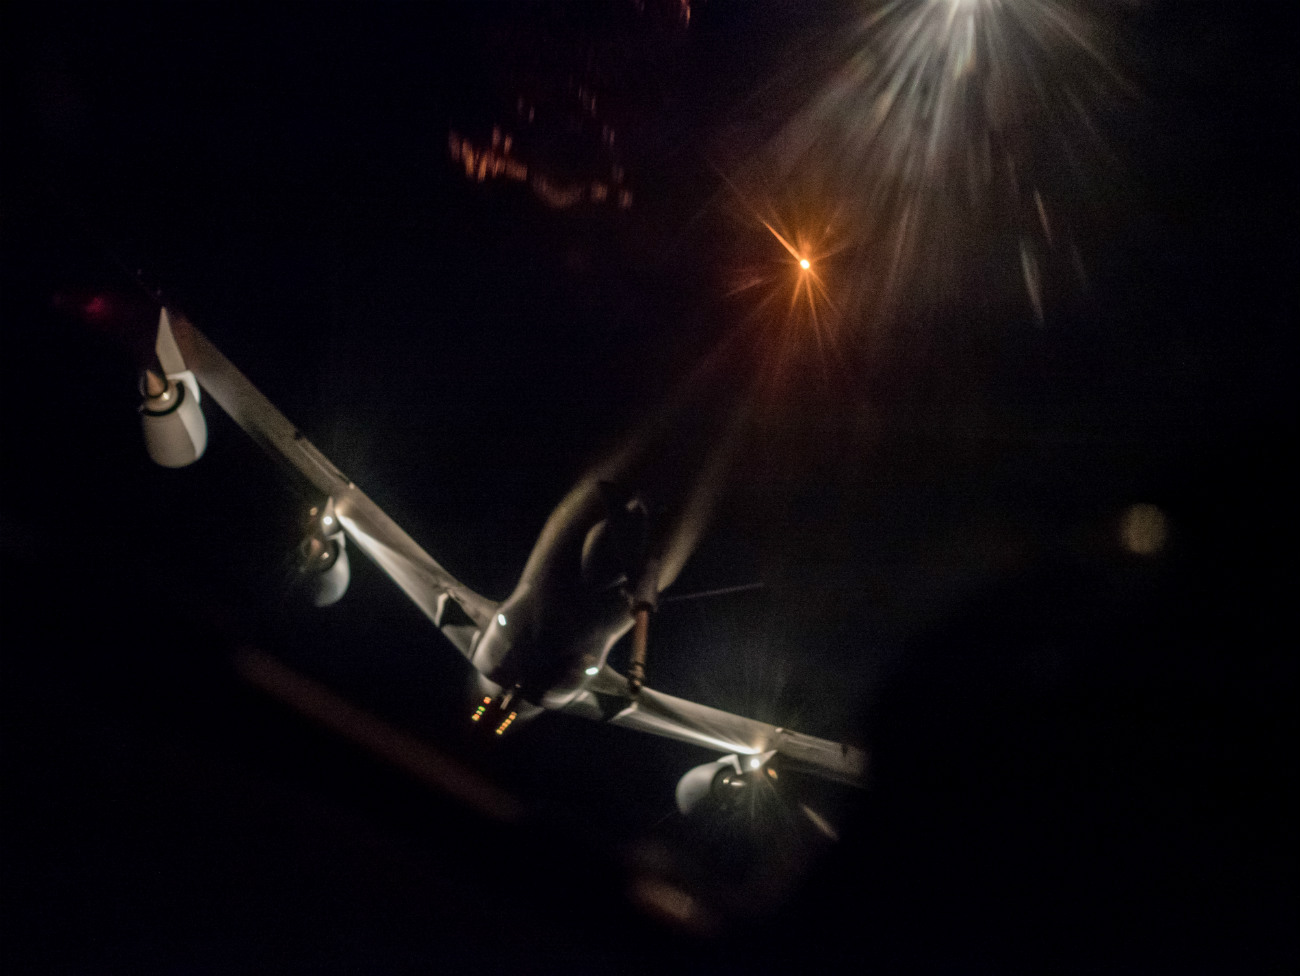 US Military Aircraft at Night Images - KC-135 Stratotanker preparing to aerial refuel